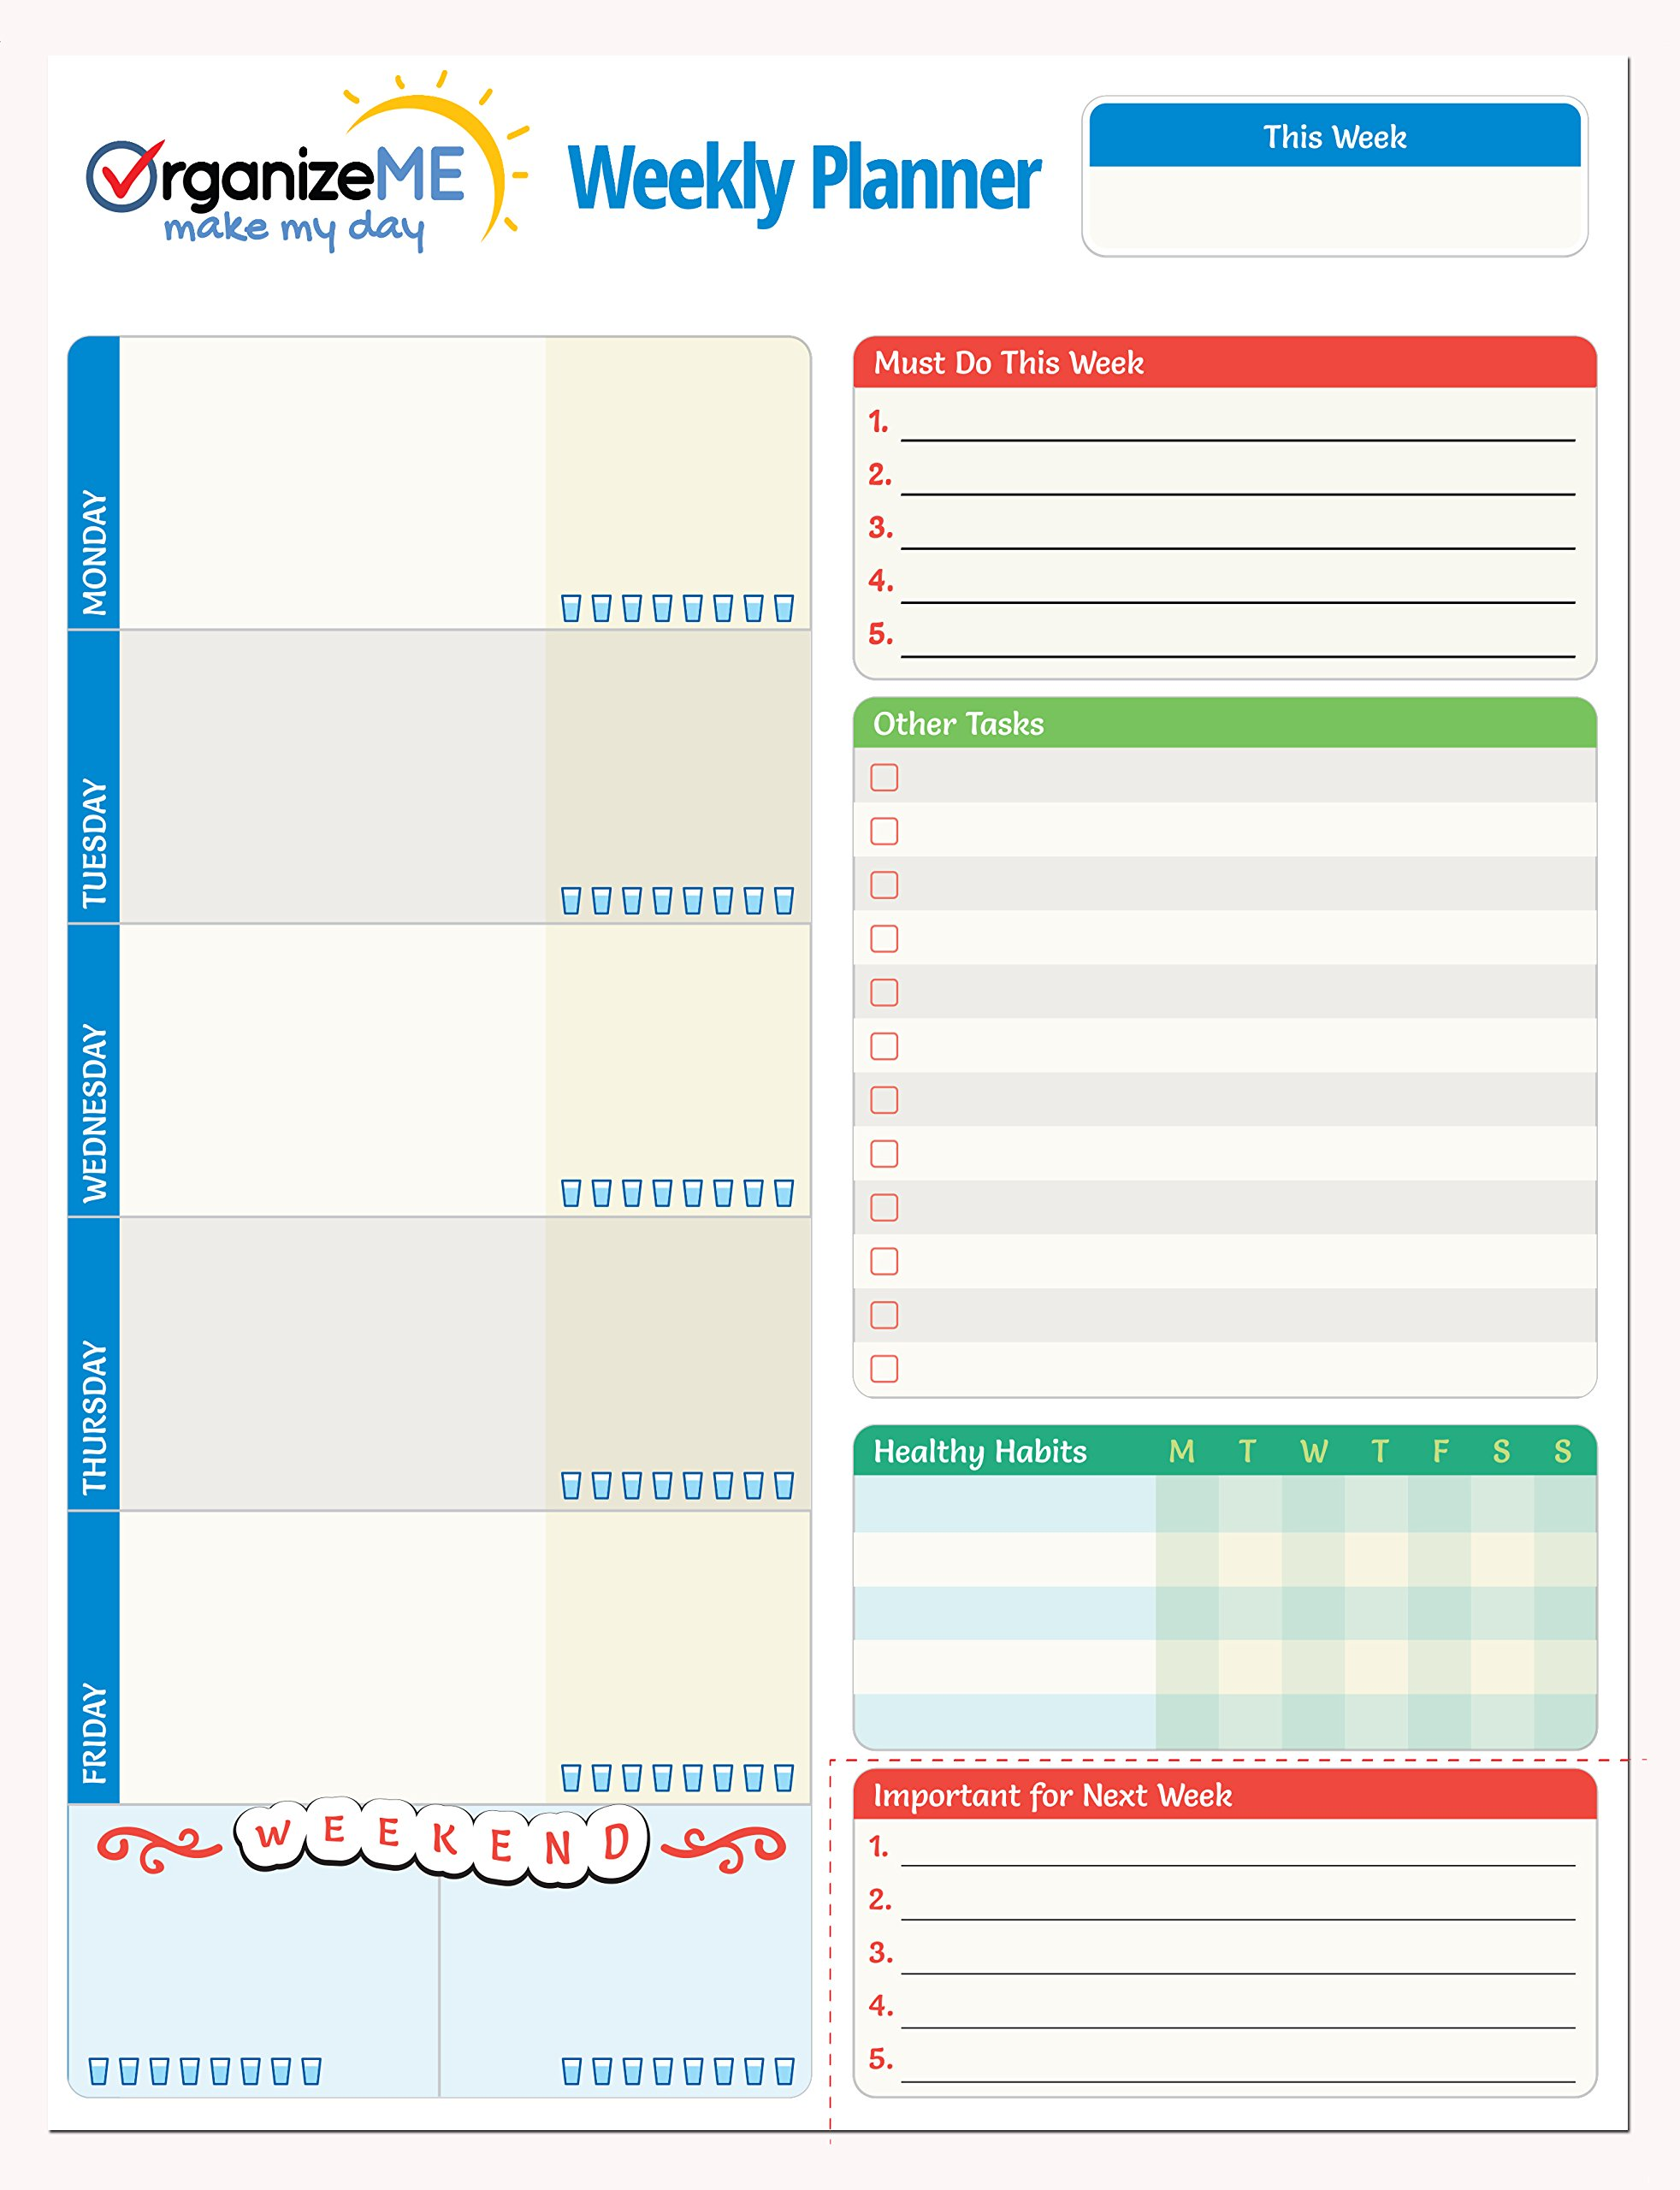 OrganizeME Weekly Planner Pad | Week Calendar Organizer For Daily Chores & To Do Lists | Easy To Tear Off Bottom | 60 Pages Daily Notebook For Meal Planning, Event Going & Healthy Habits Noting